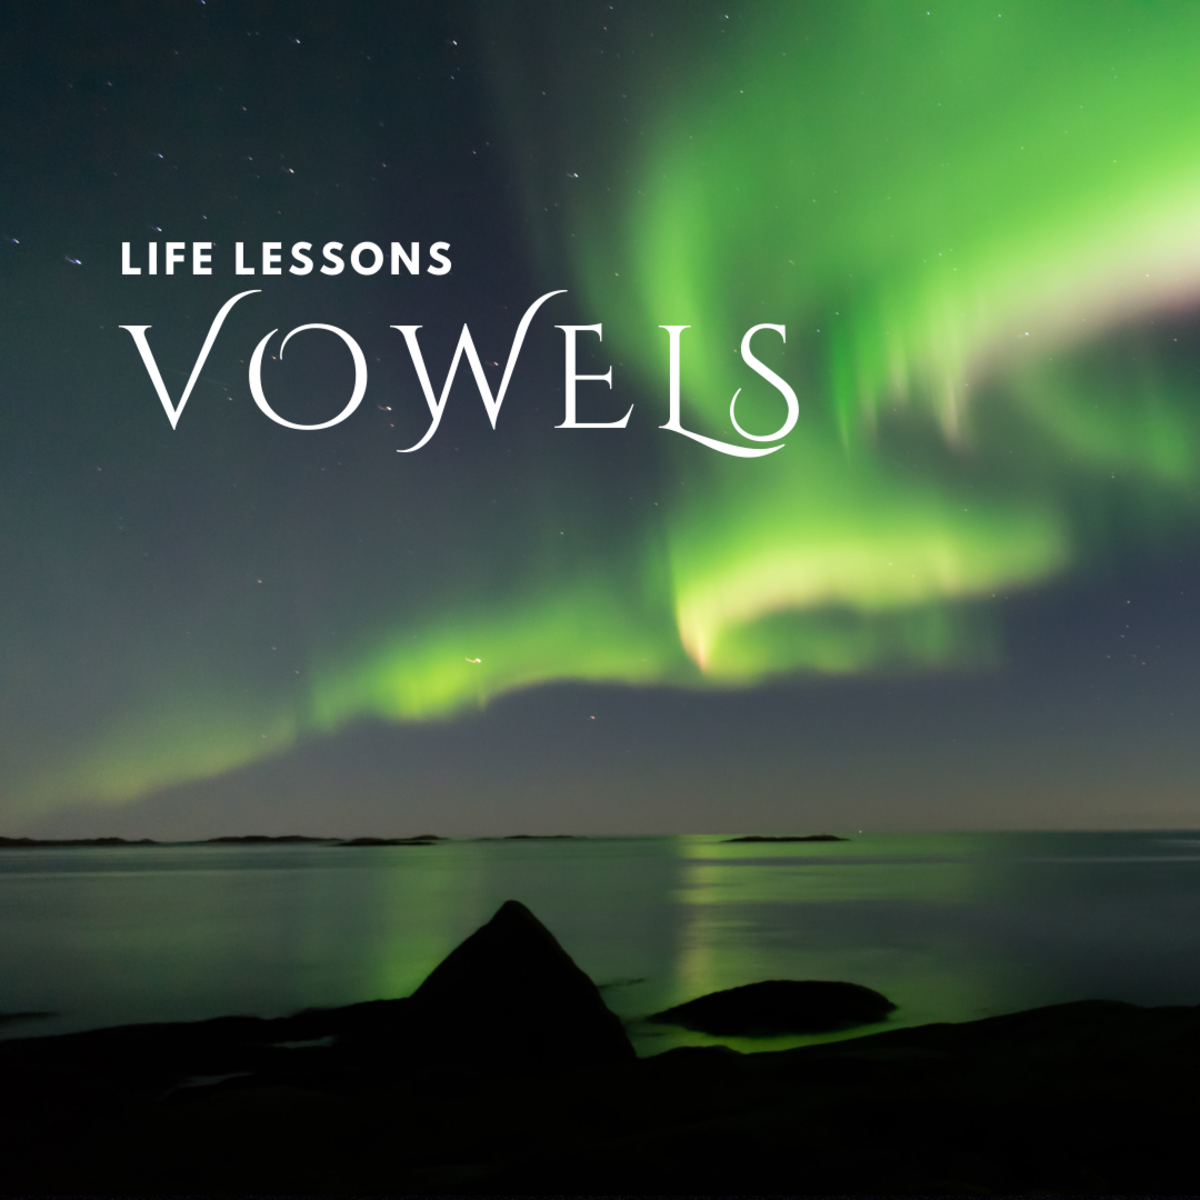 The vowels in your name tell you about your Life Lessons